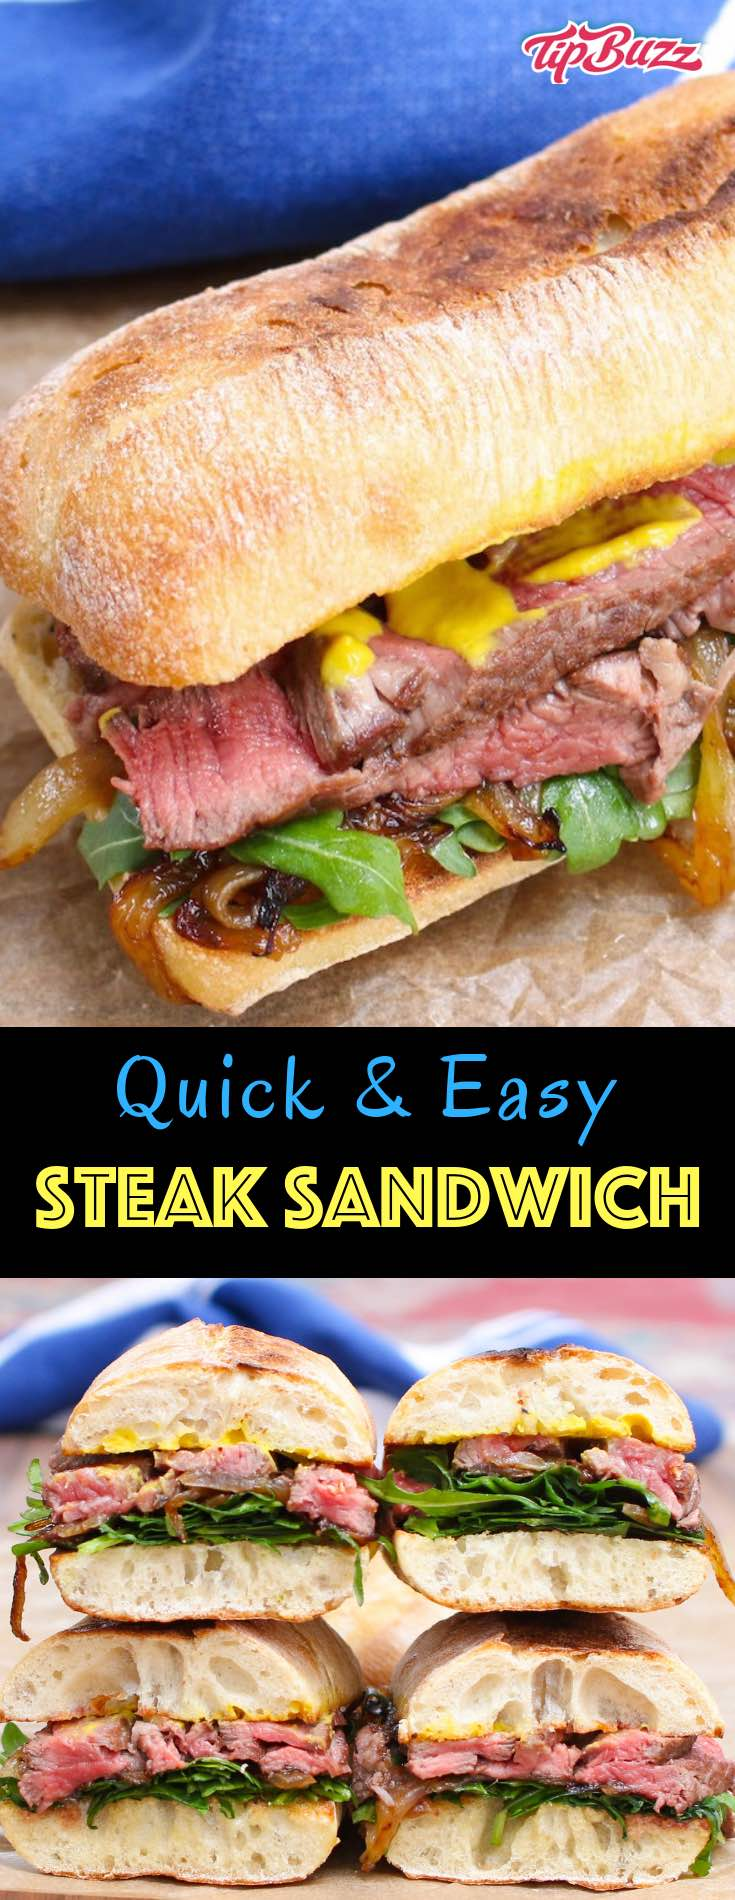 Steak Sandwich is a hearty and flavorful sandwich loaded with tender and thinly-sliced steak, green vegetables, caramelized onions and mustard, along with the nicely toasted bread. #SteakSandwich